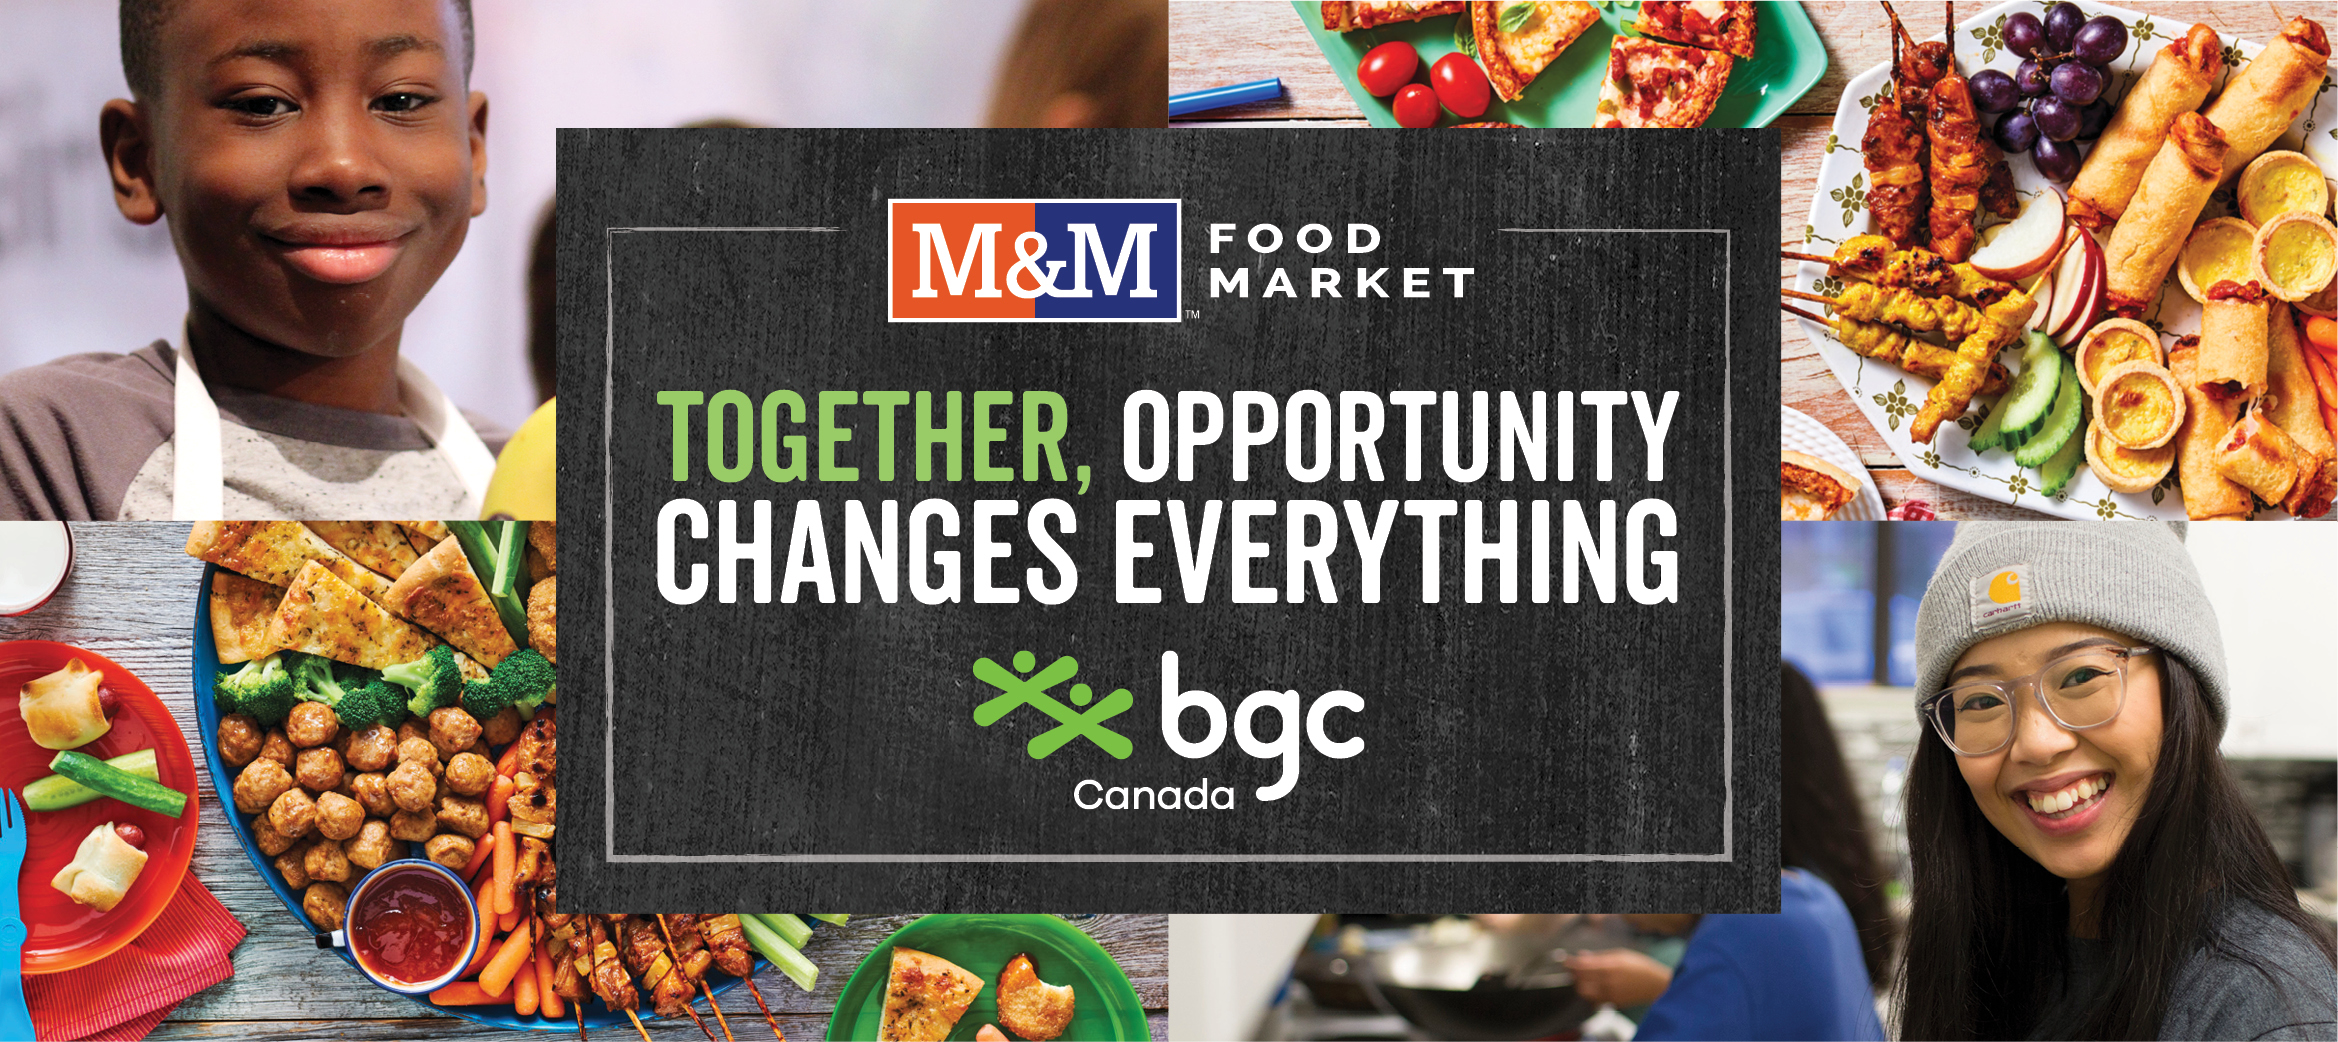 Together, opportunity changes everything - M&M Food Market and BGC Canada